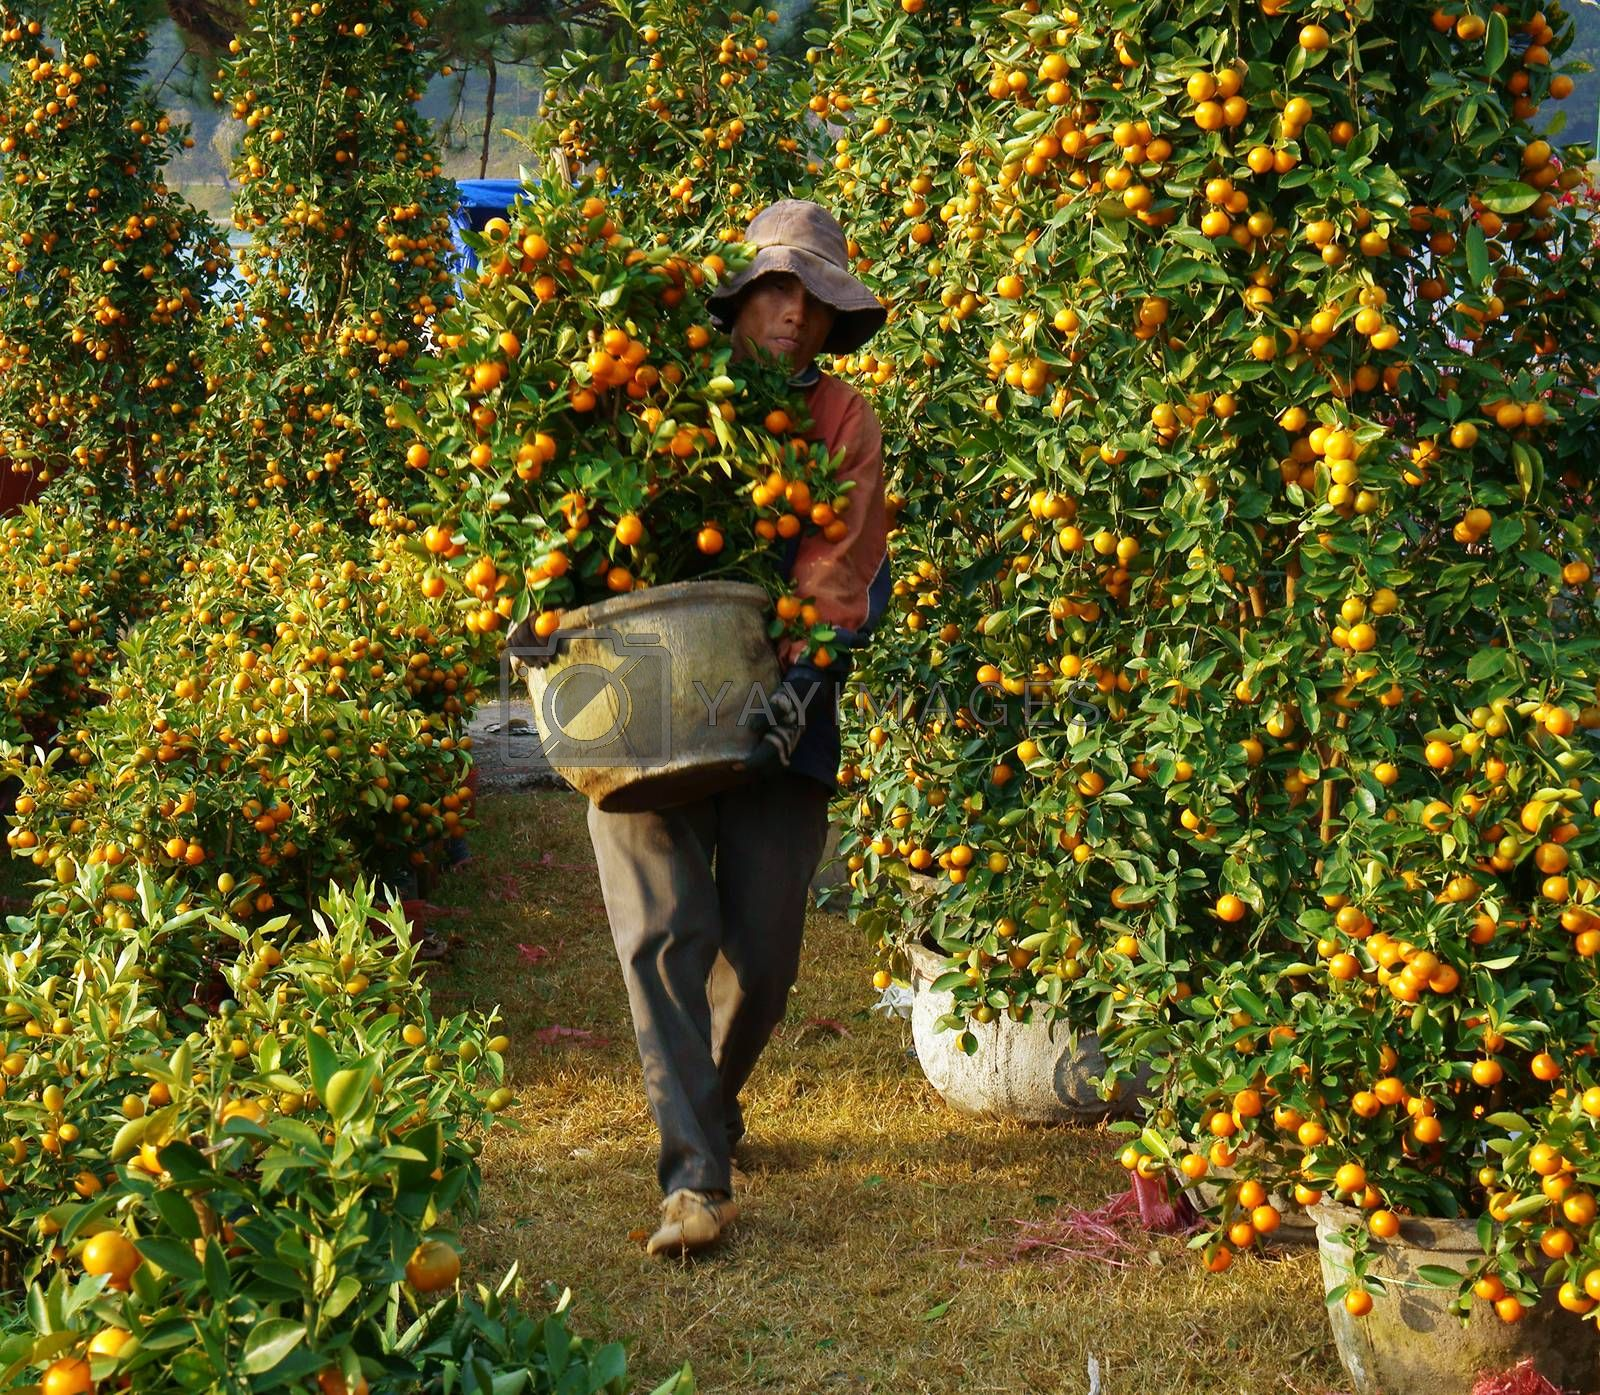 Vietnamese people sale citrus tree at market by xuanhuongho